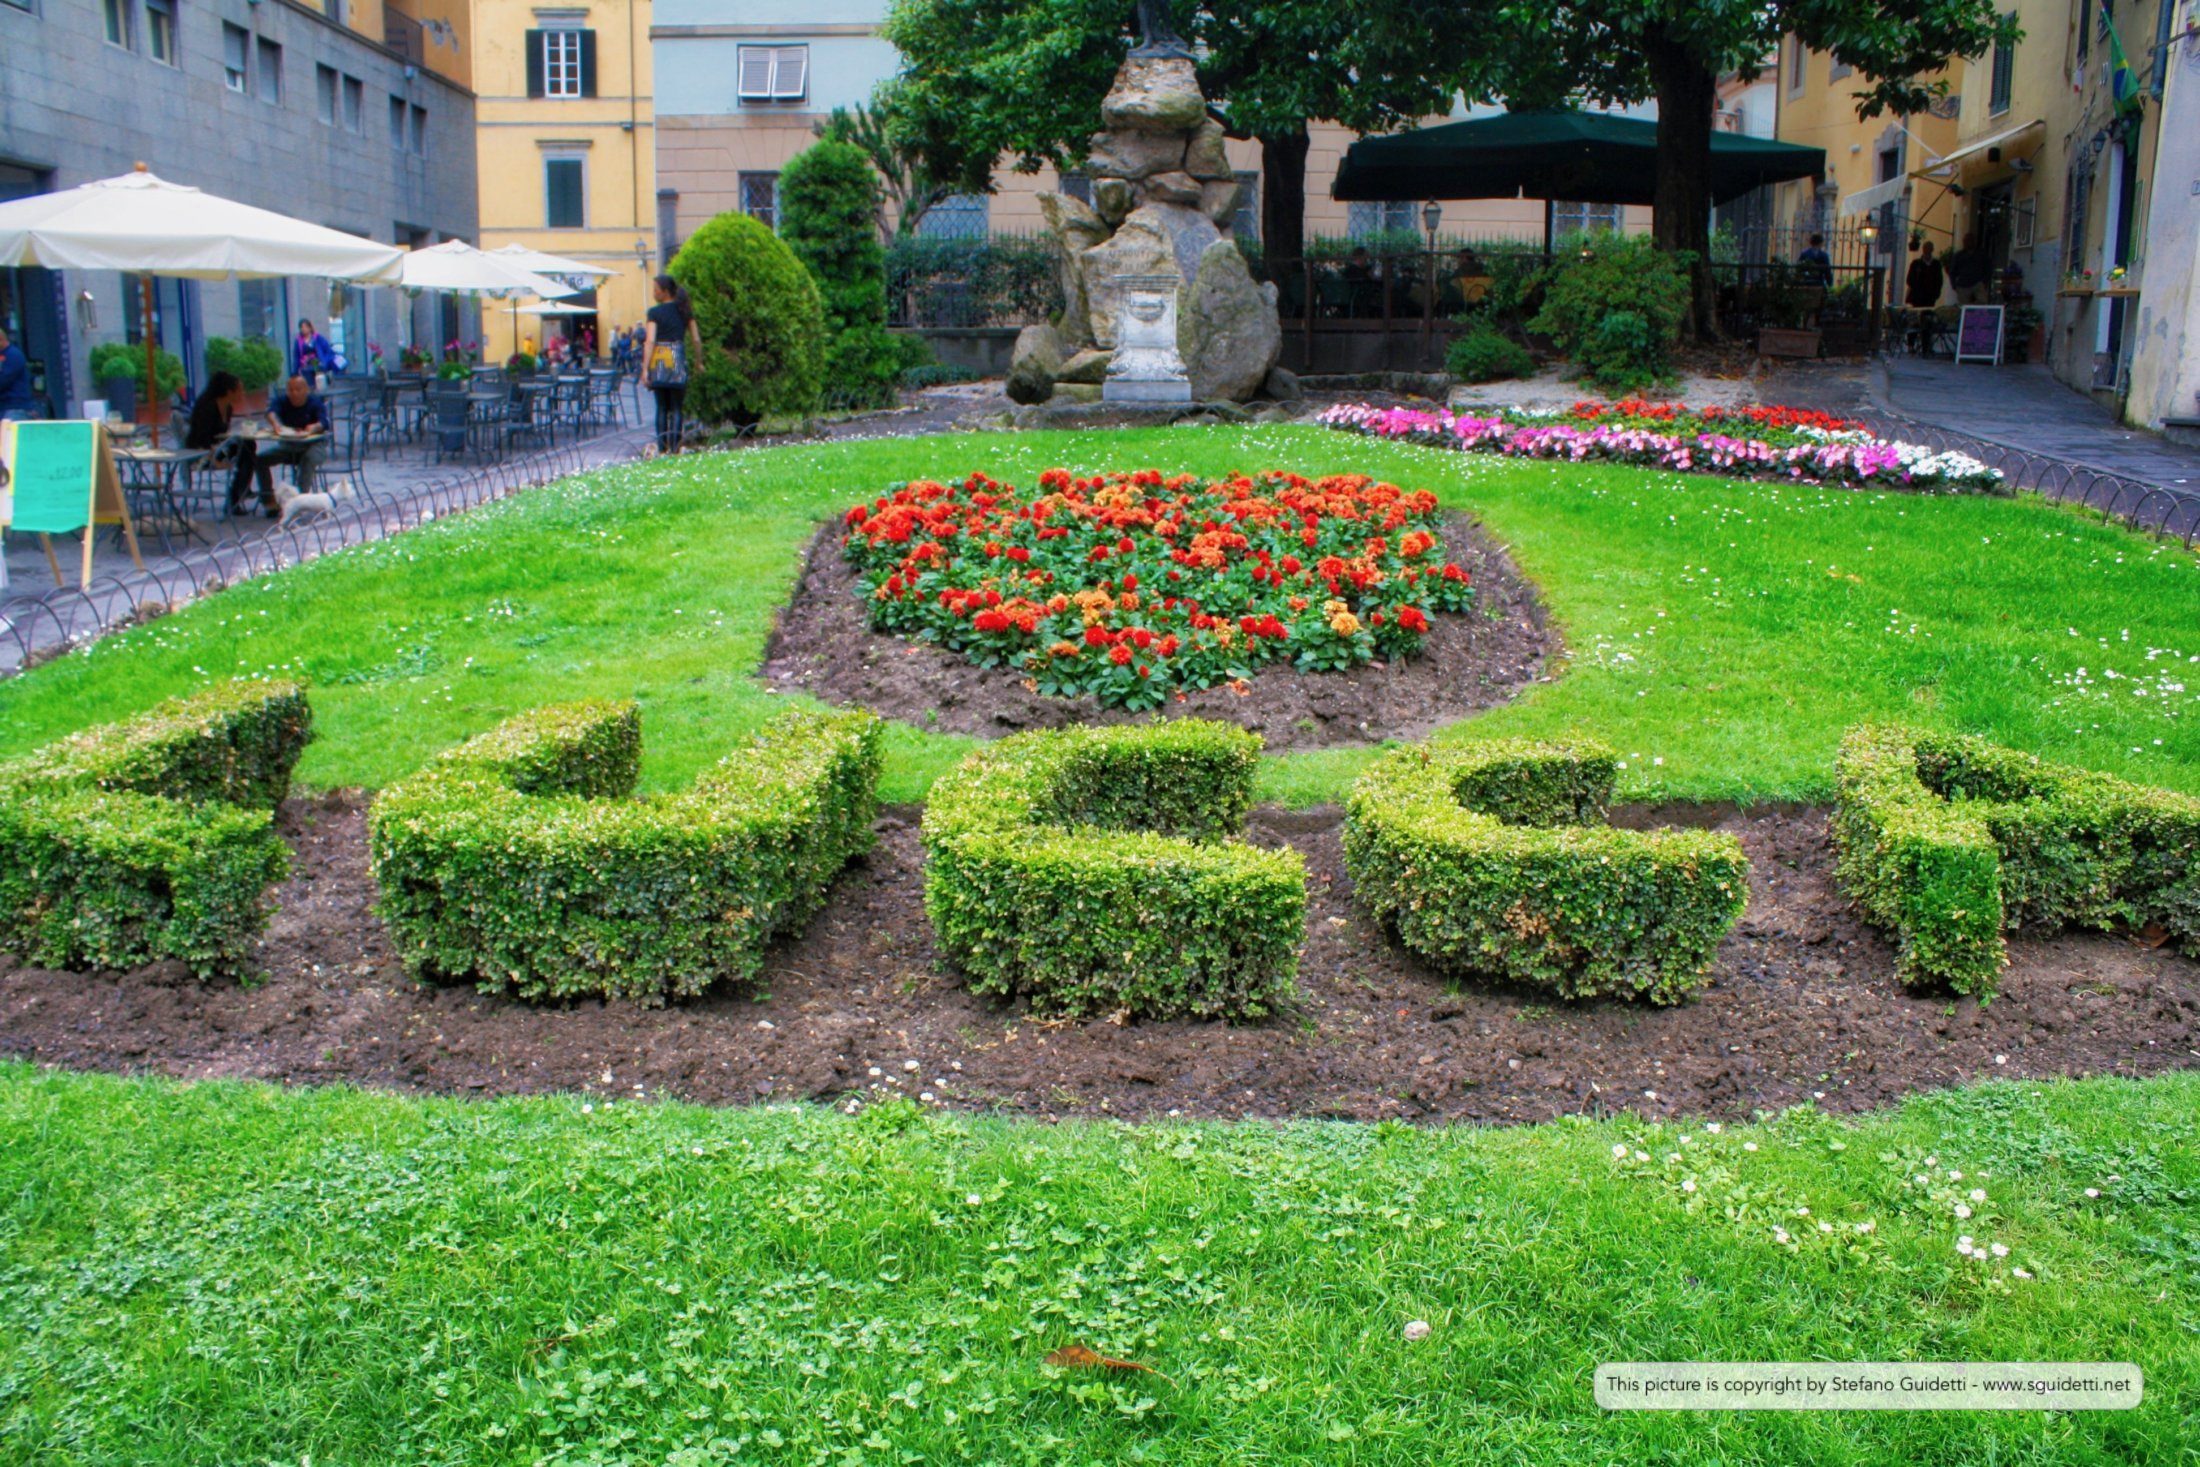 lucca_20160603_IMG_0420